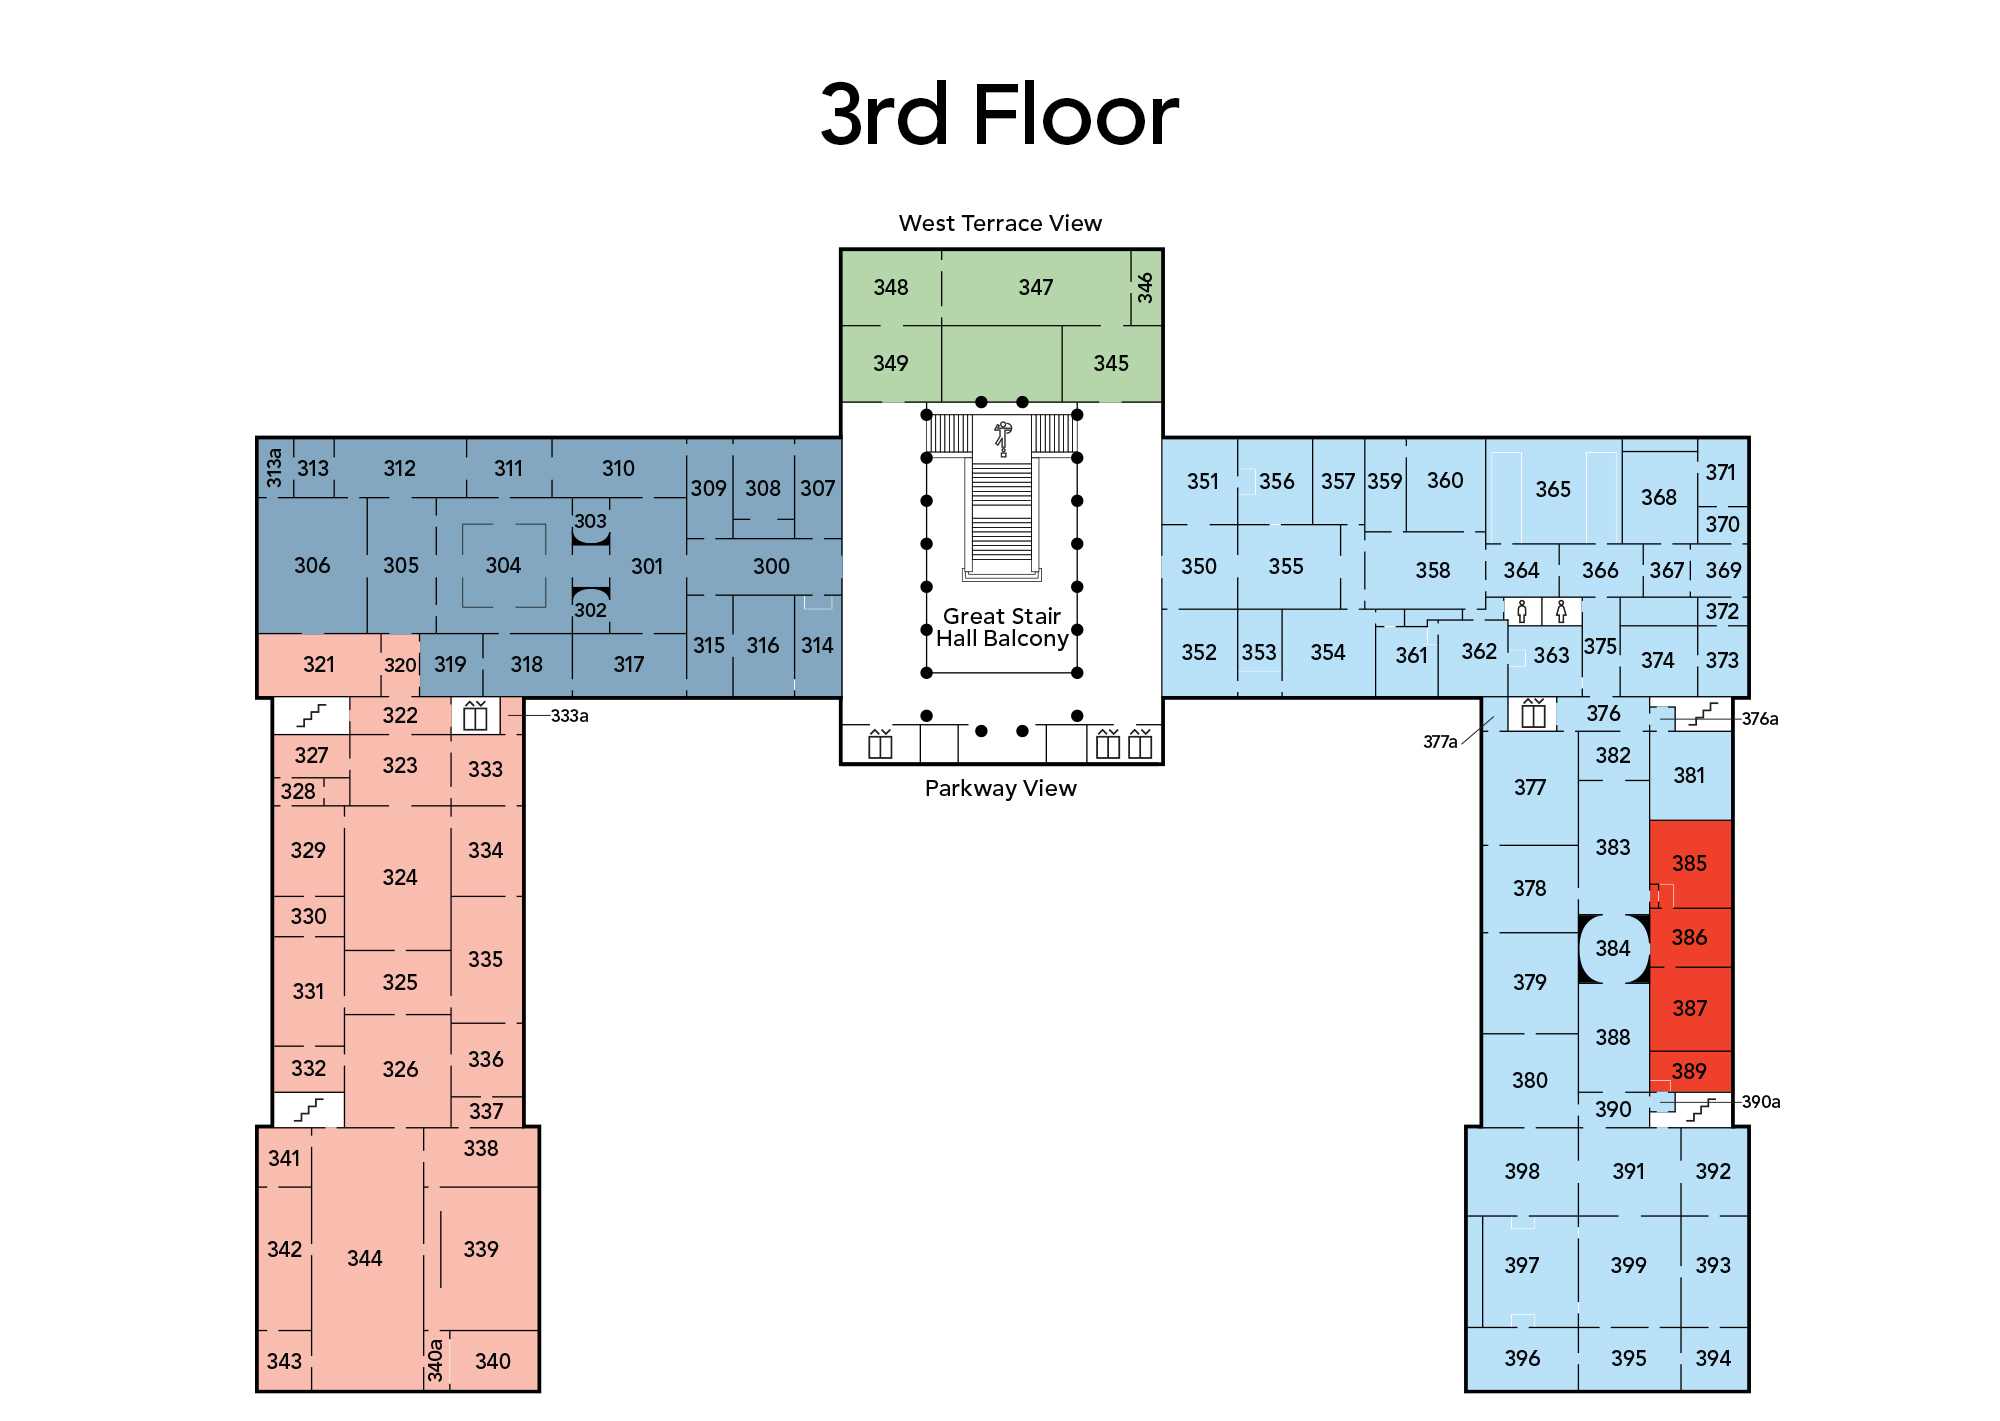 Map of main building third floor